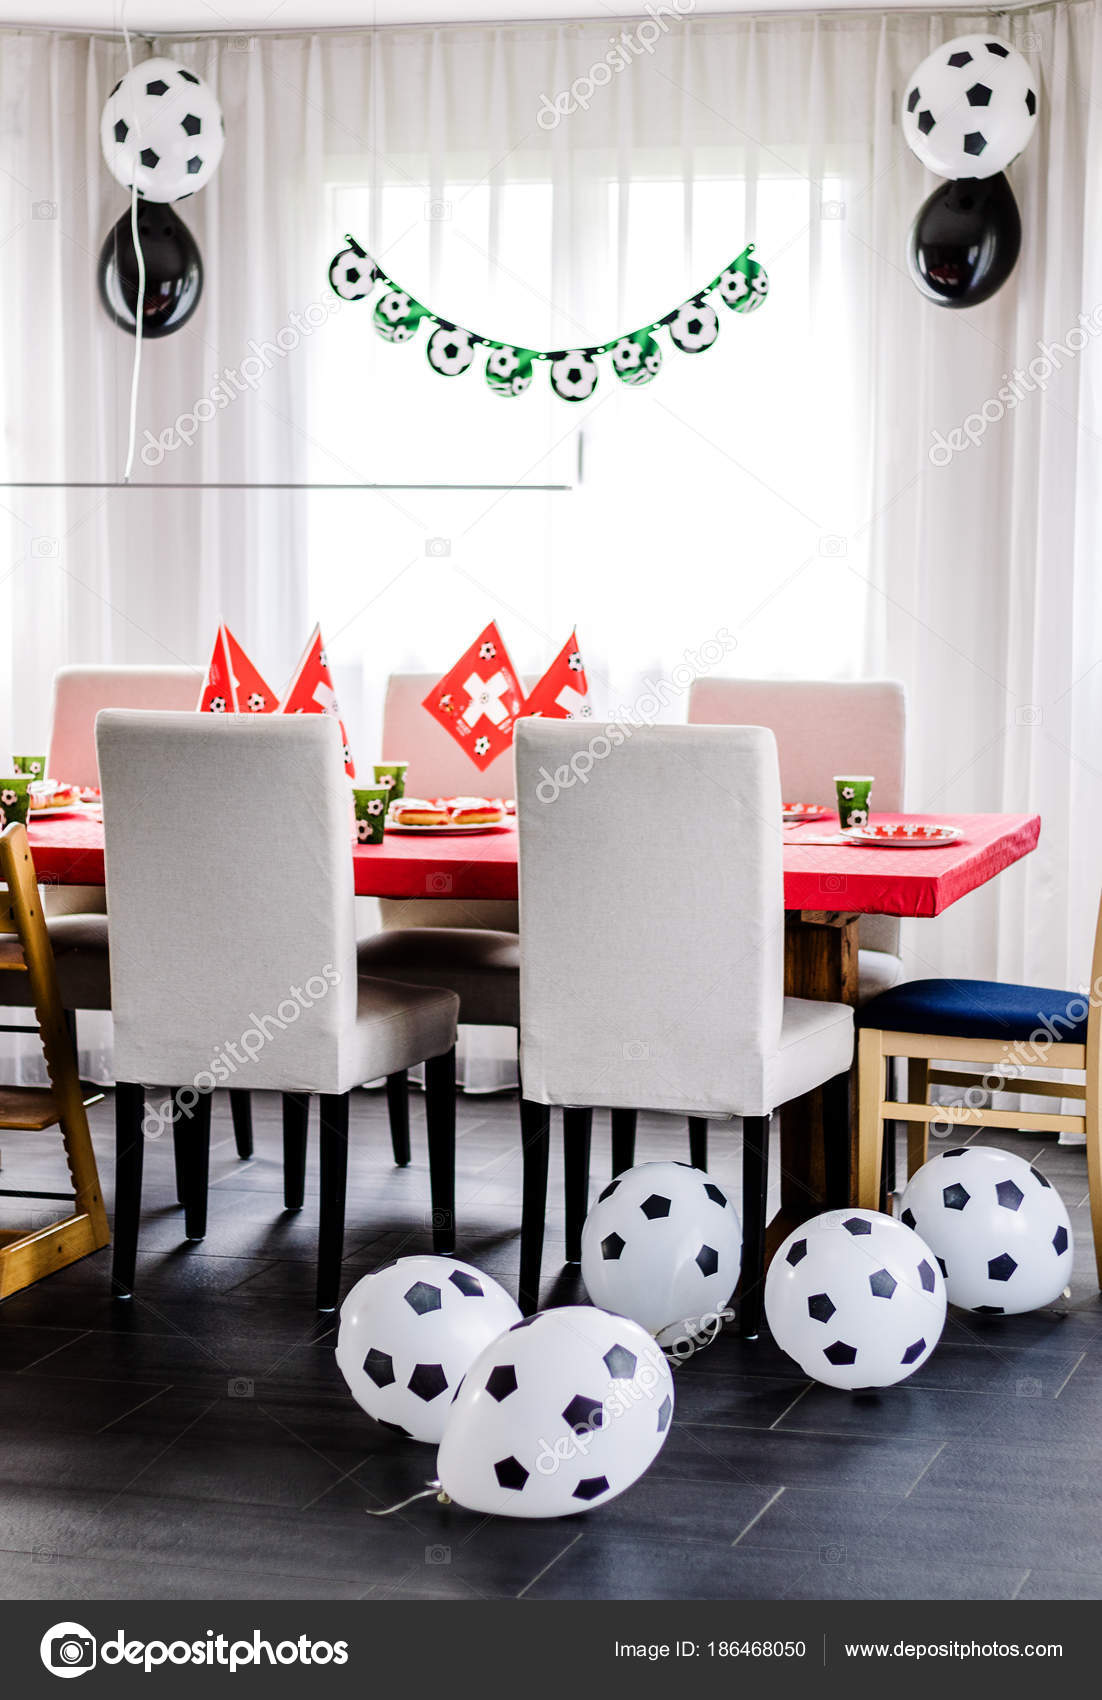 Stupendous Pictures Football Birthday Kids Birthday Party Football Caraccident5 Cool Chair Designs And Ideas Caraccident5Info